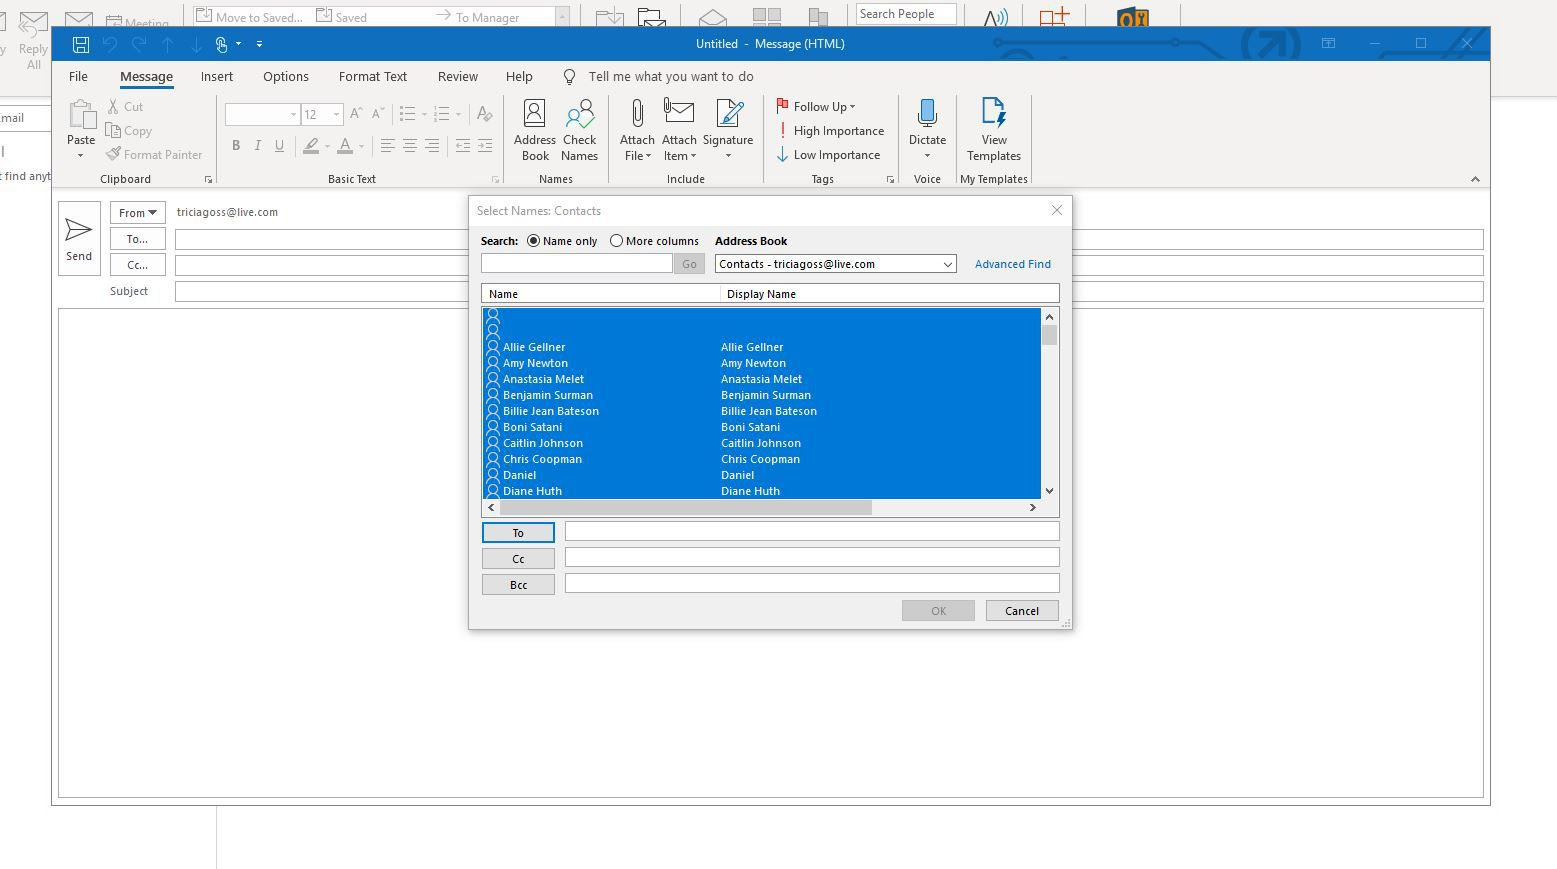 Screenshots showing all contacts selected